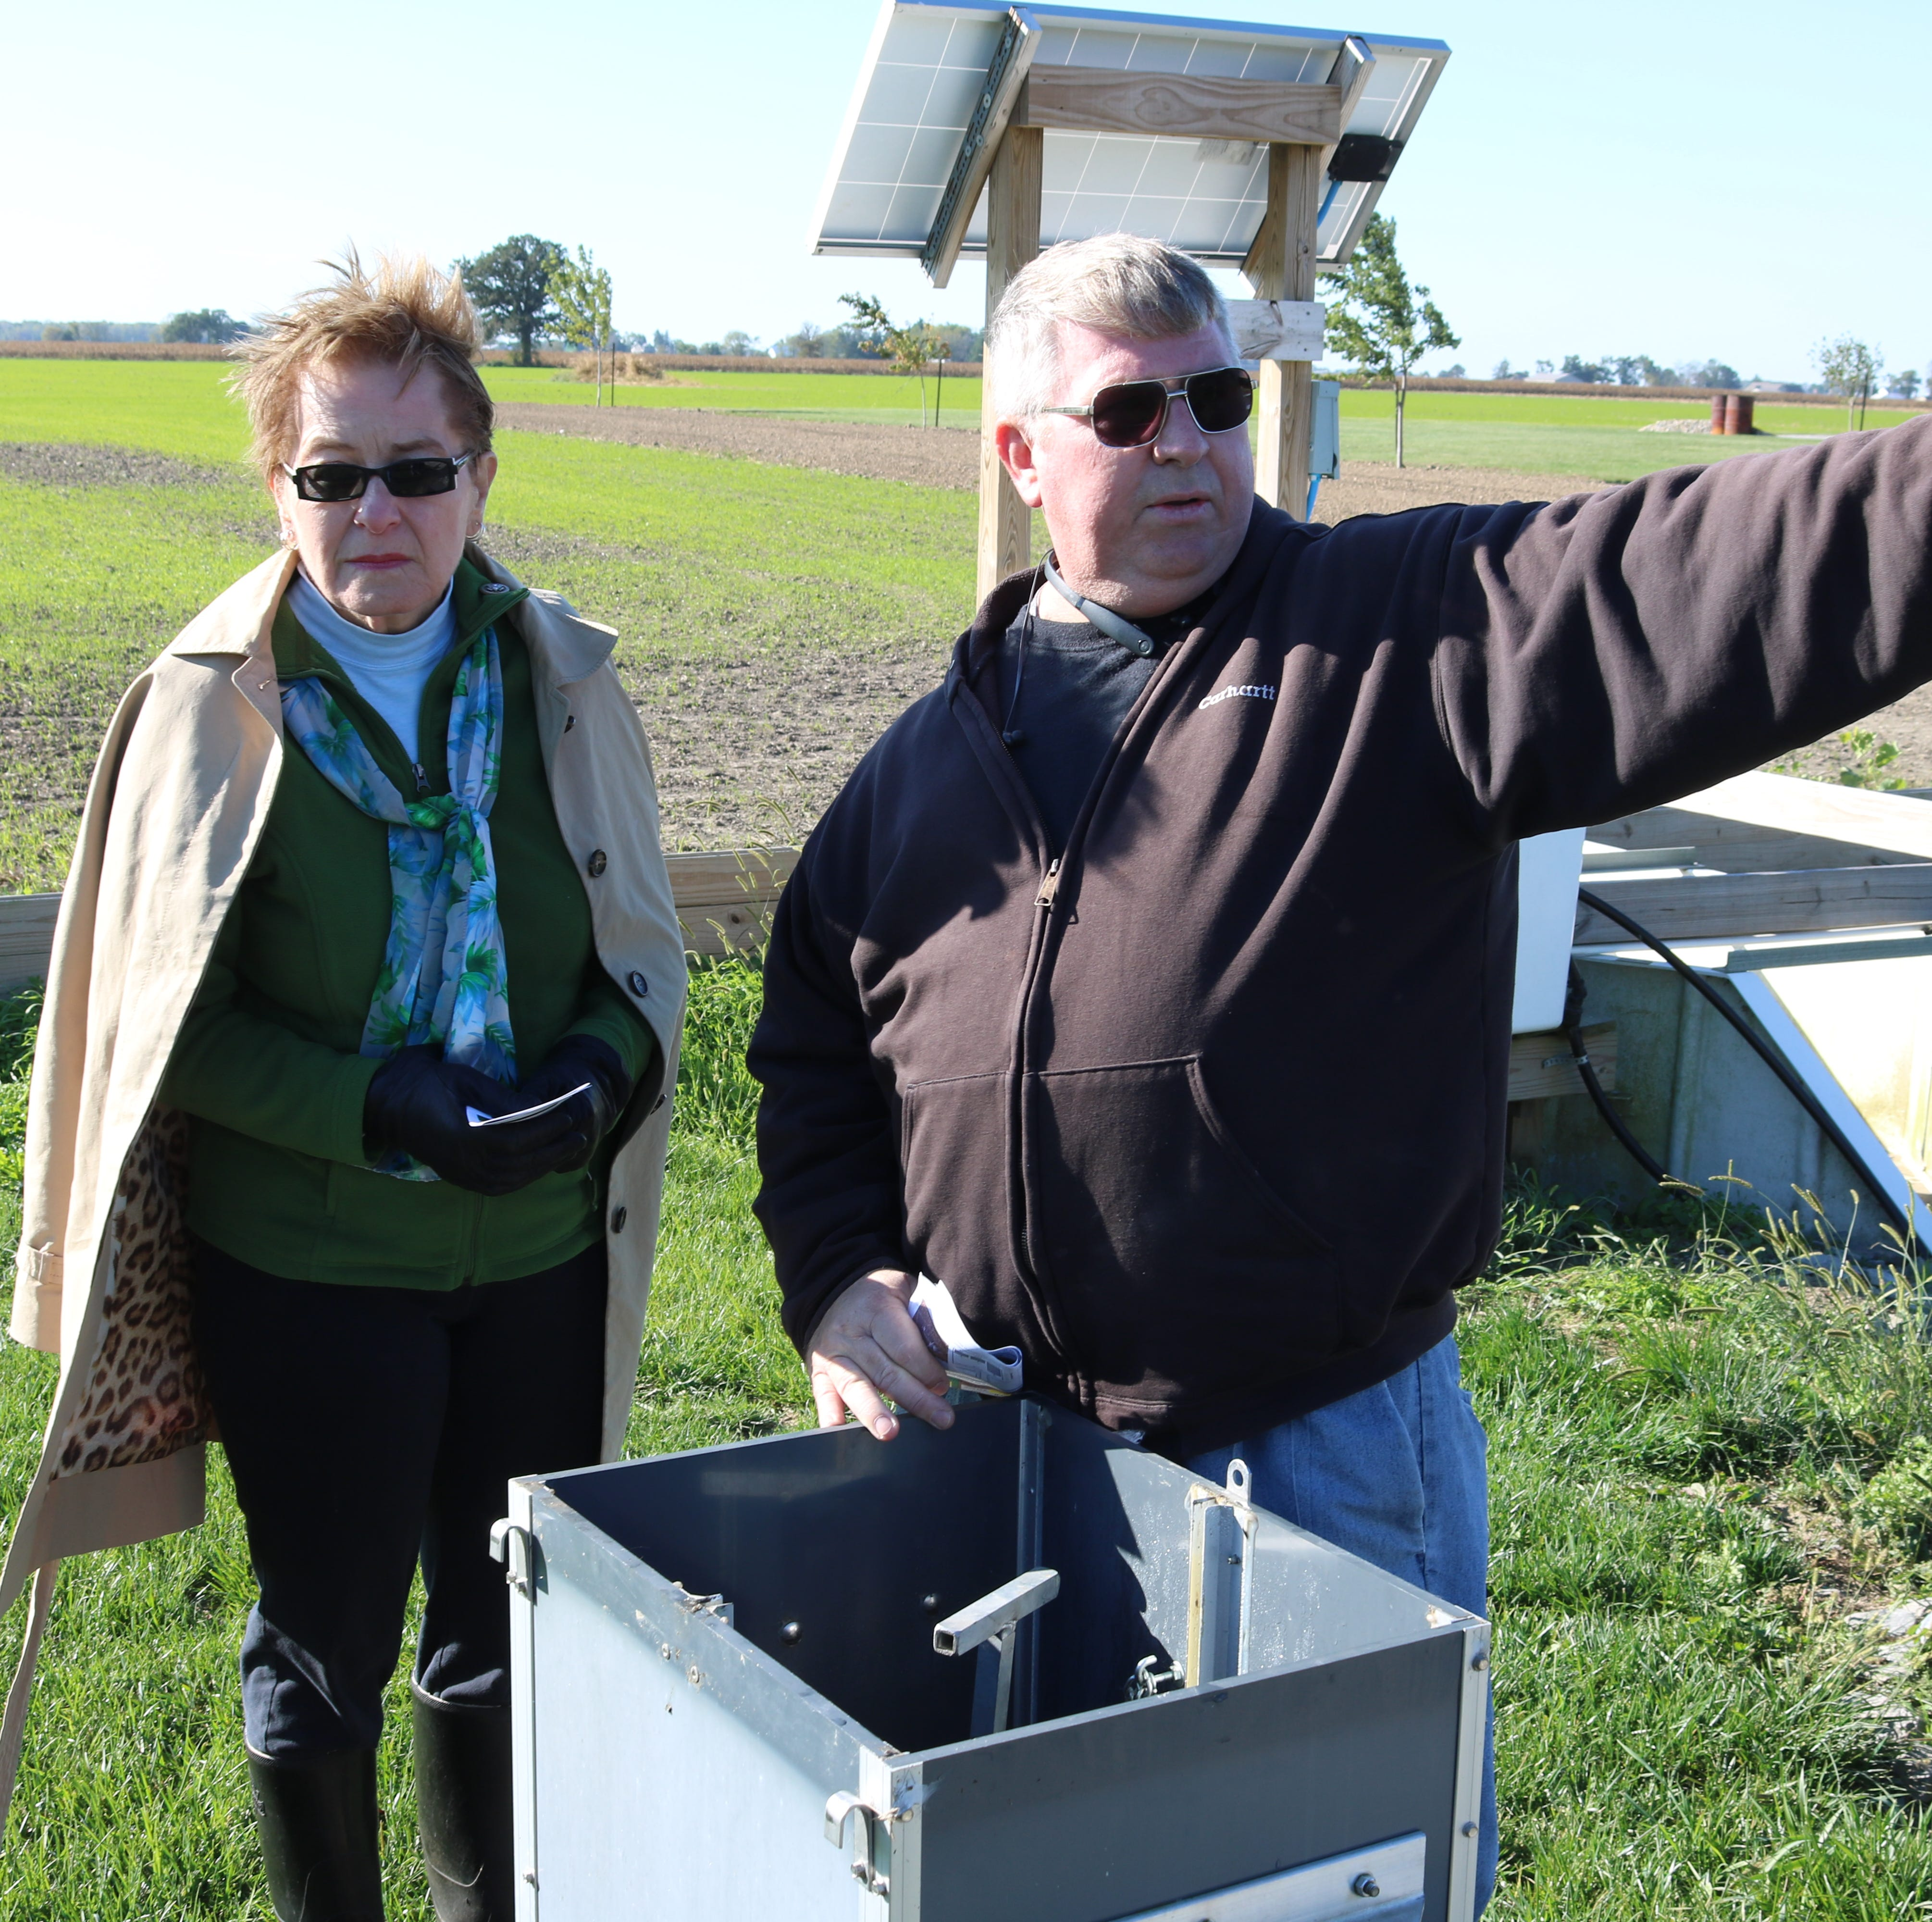 Kaptur visits demonstration farm addressing runoff pollution